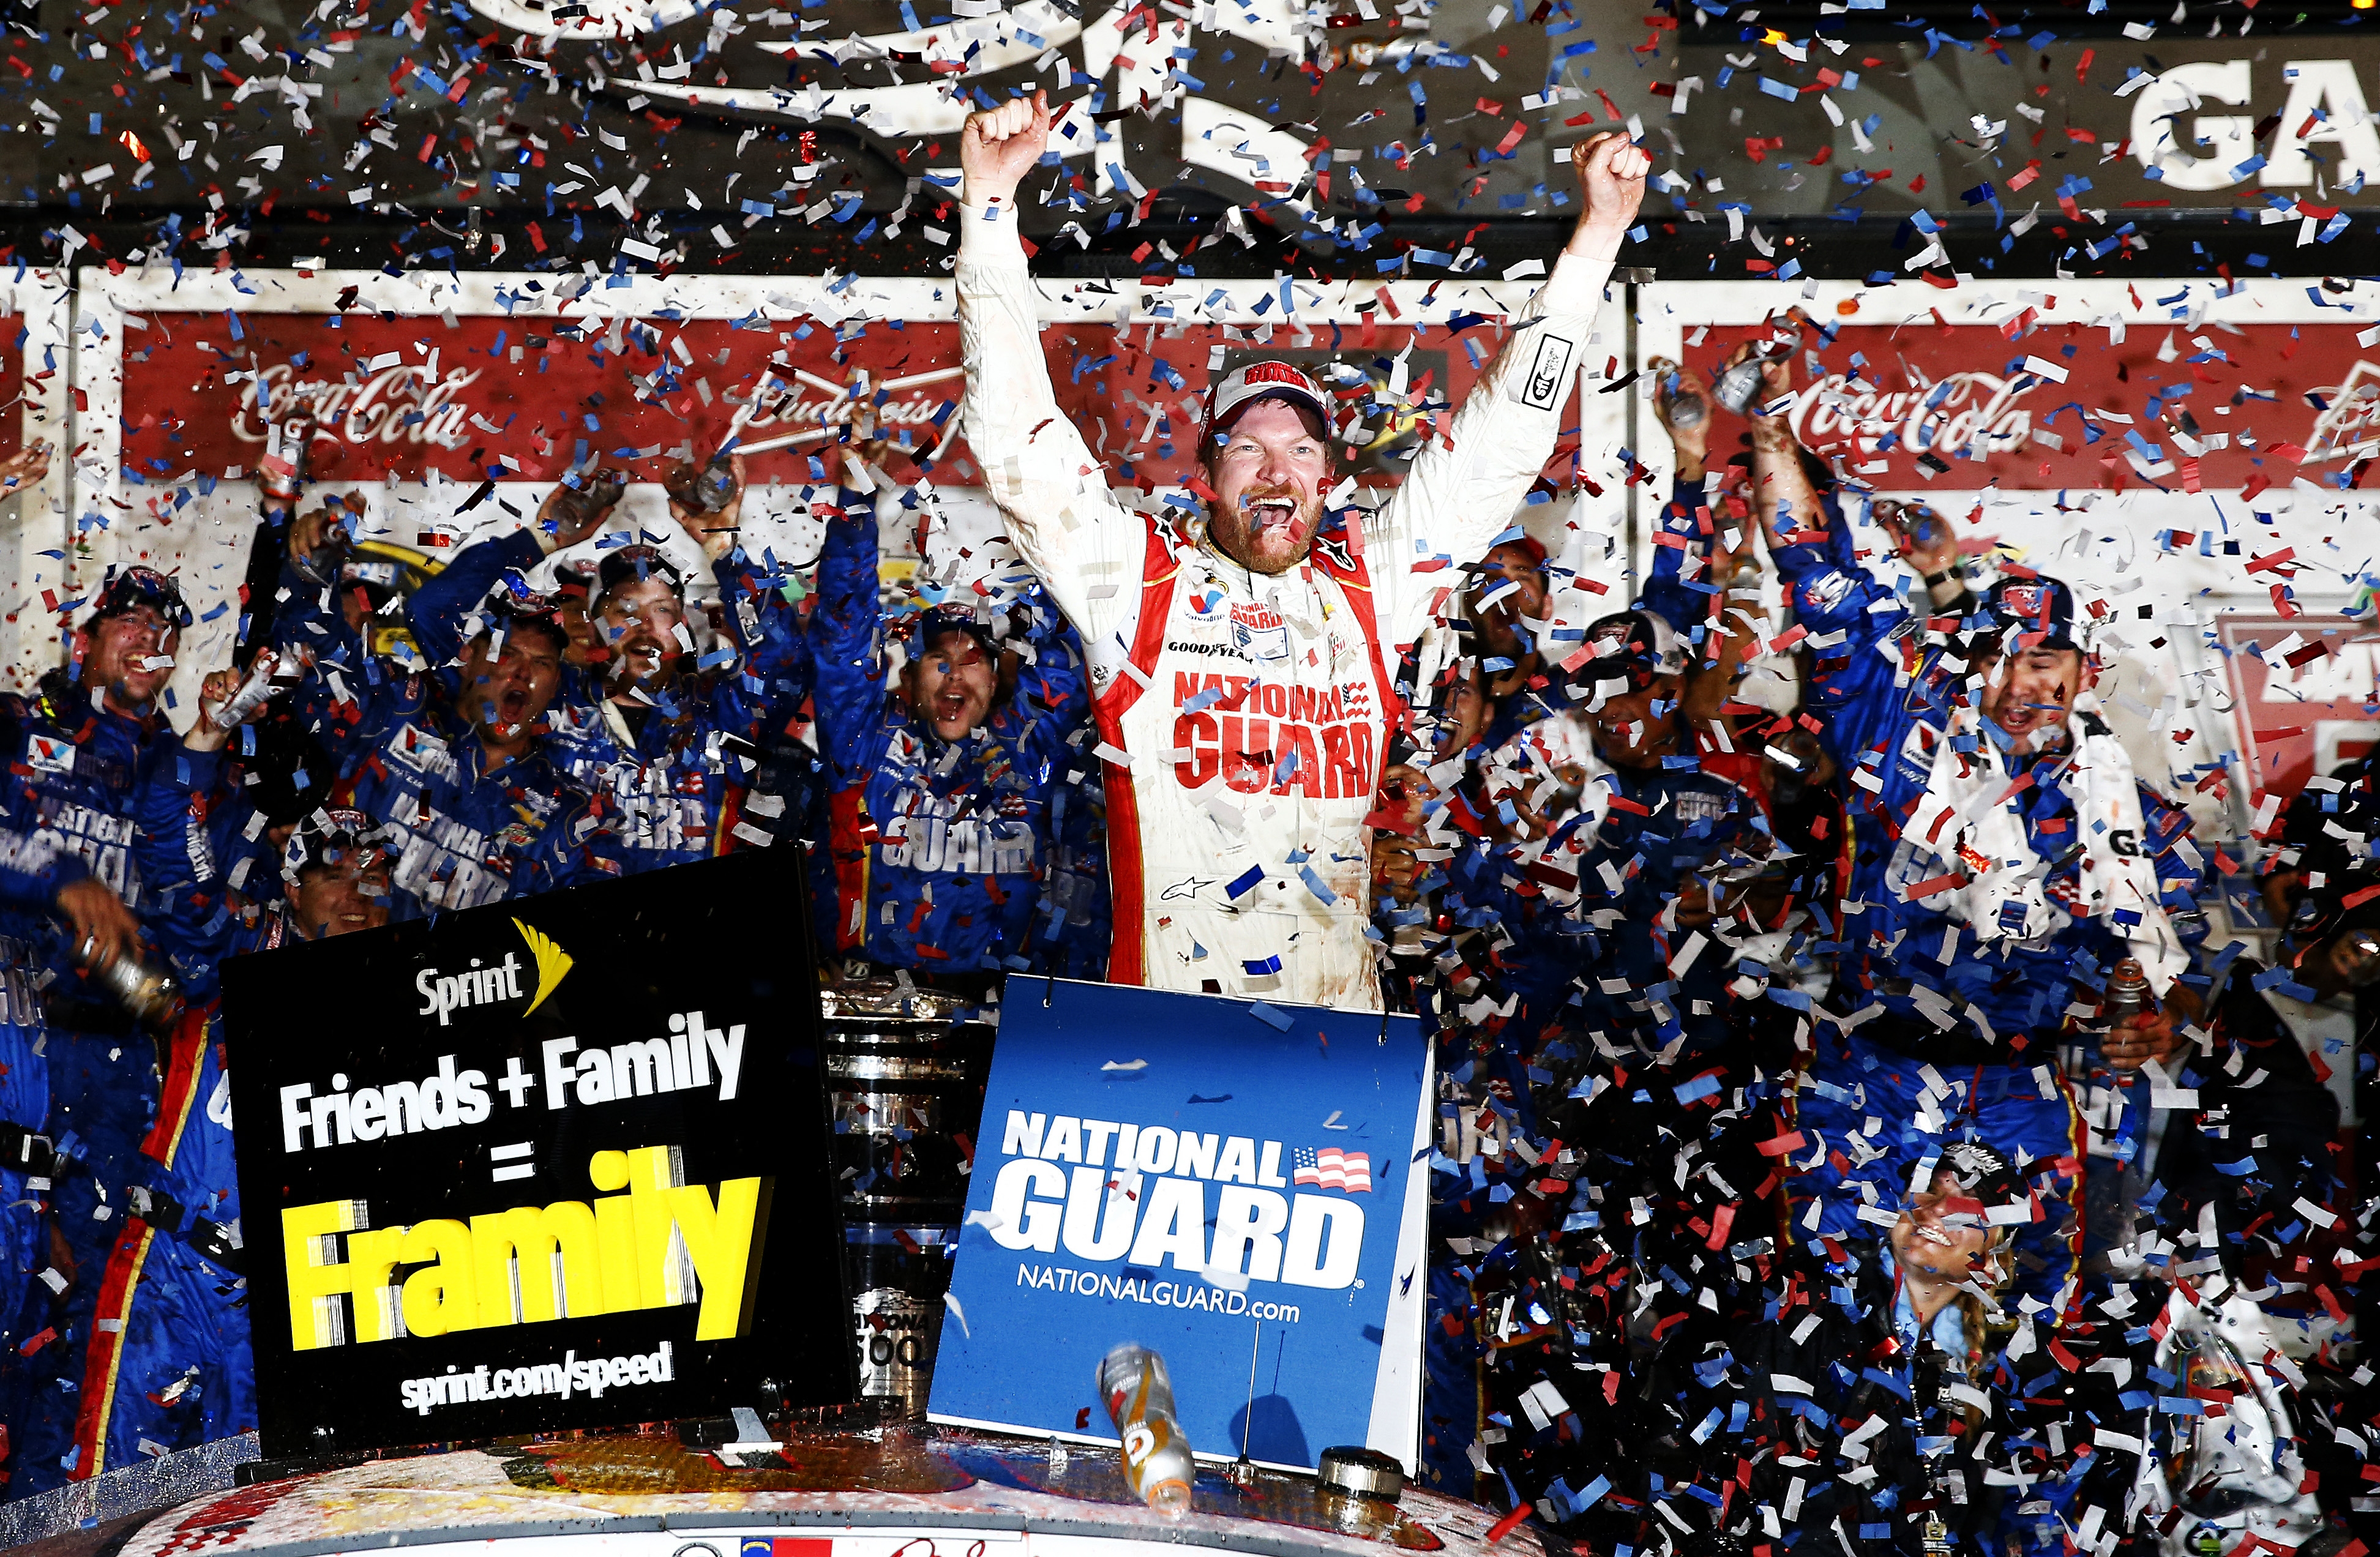 Dale Earnhardt Jr., driver of the #88 National Guard Chevrolet, celebrates in Victory Lane after winning the NASCAR Sprint Cup Series Daytona 500 on Sunday night, his second career win in the Great American Race.